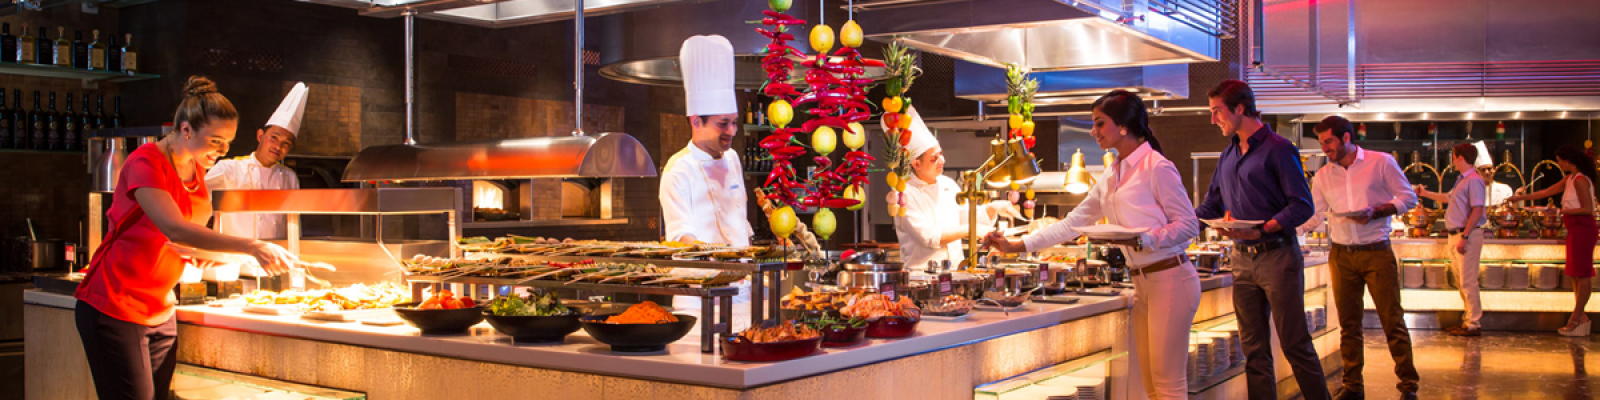 atlantis hotel lunch, atlantis hotel lunch buffet, atlantis hotel lunch booking, atlantis hotel lunch deals